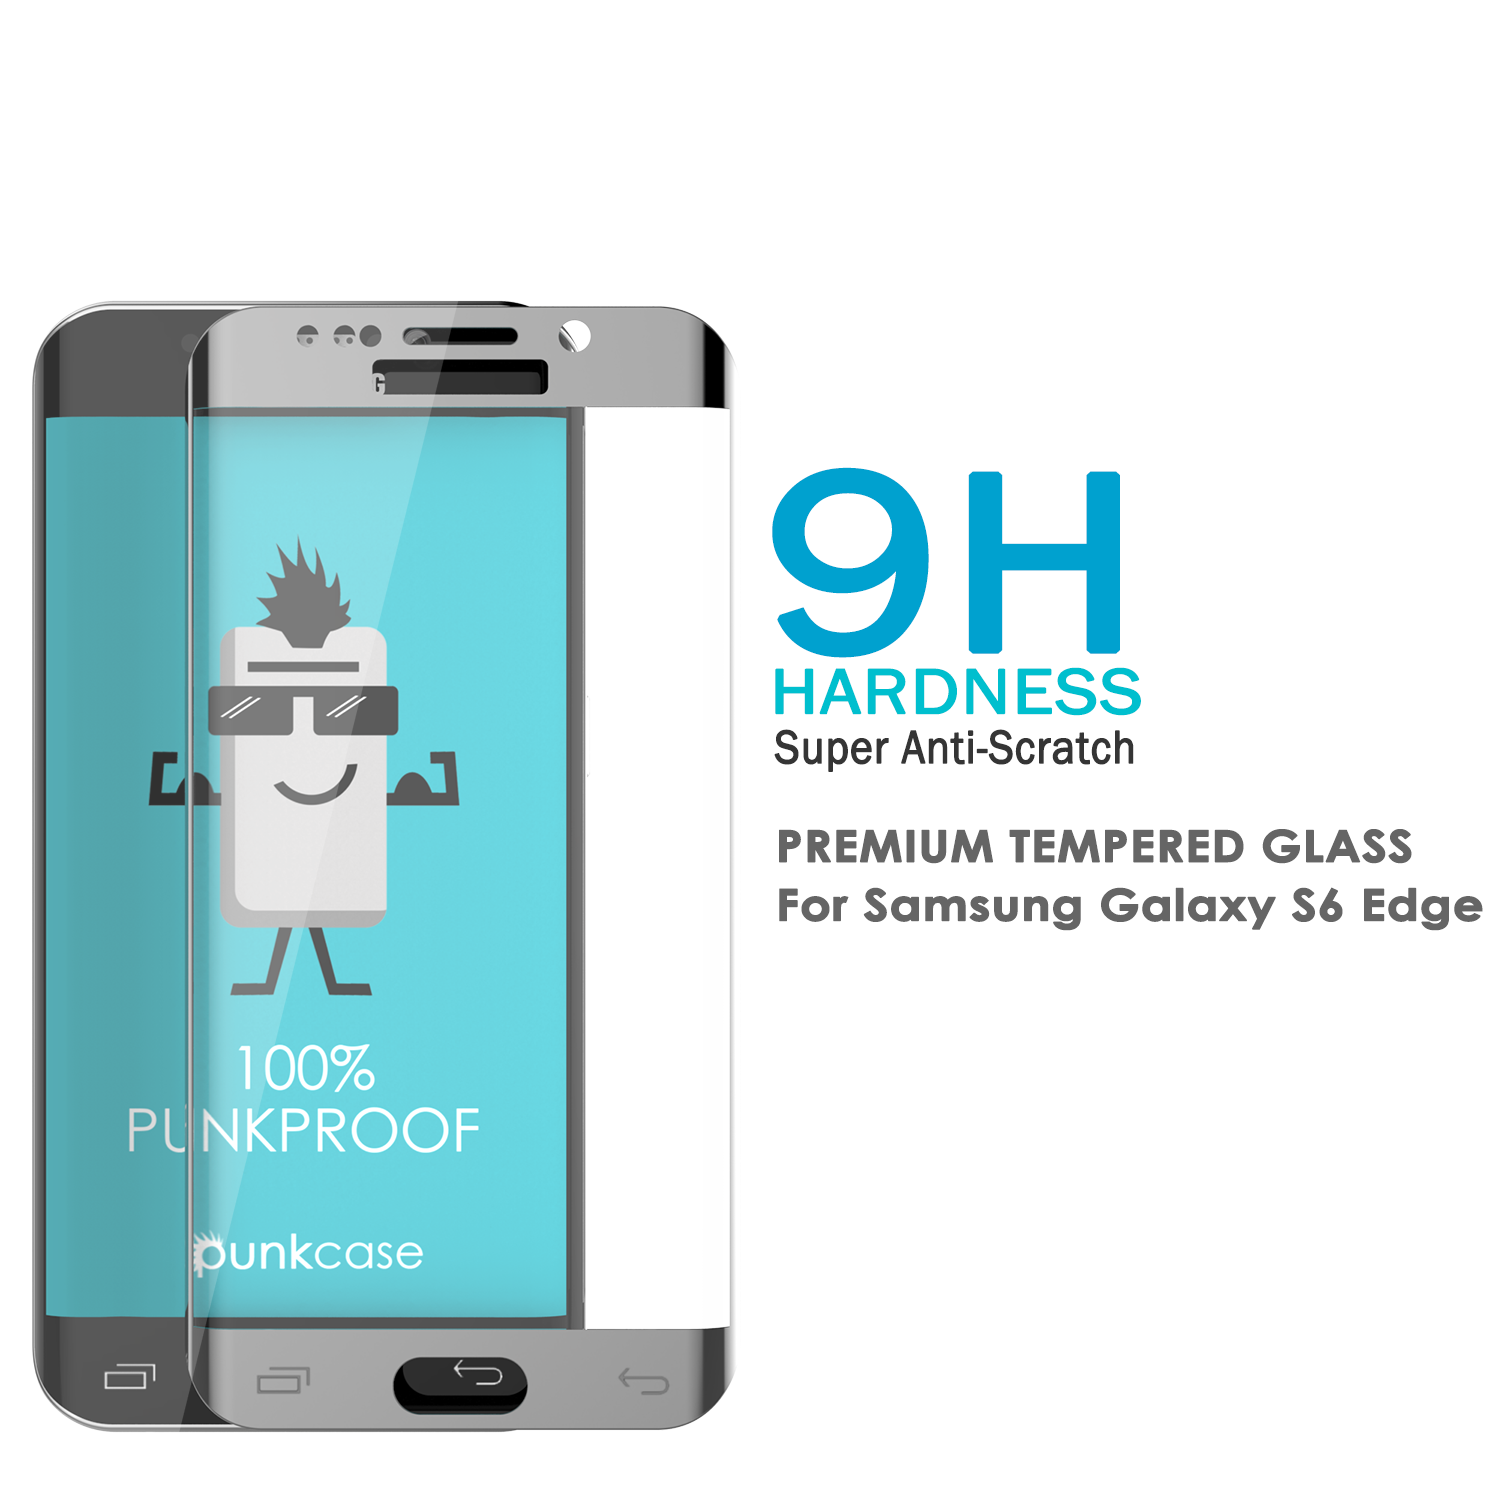 Galaxy S6 Edge Plus Silver Punkcase Glass SHIELD Tempered Glass Screen Protector 0.33mm Thick 9H